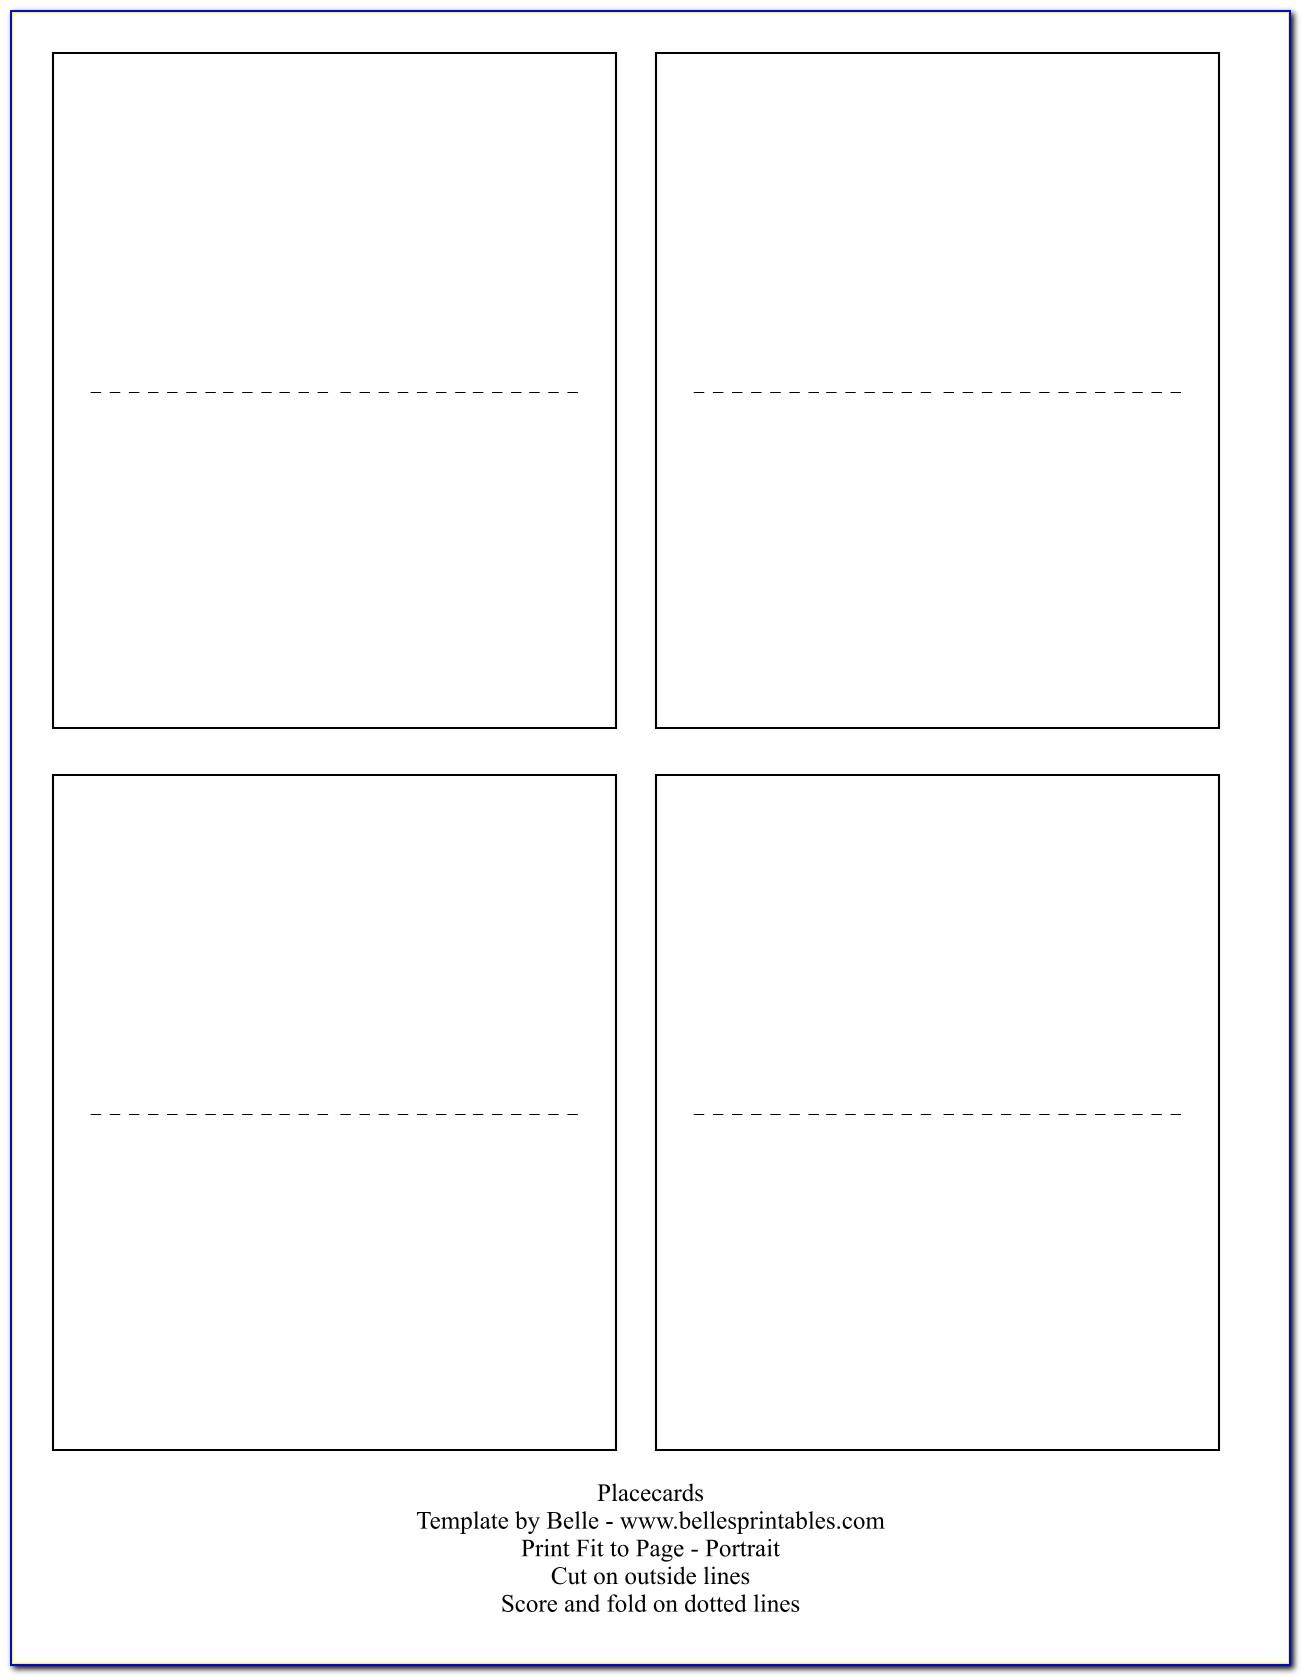 Name Place Card Tent Template